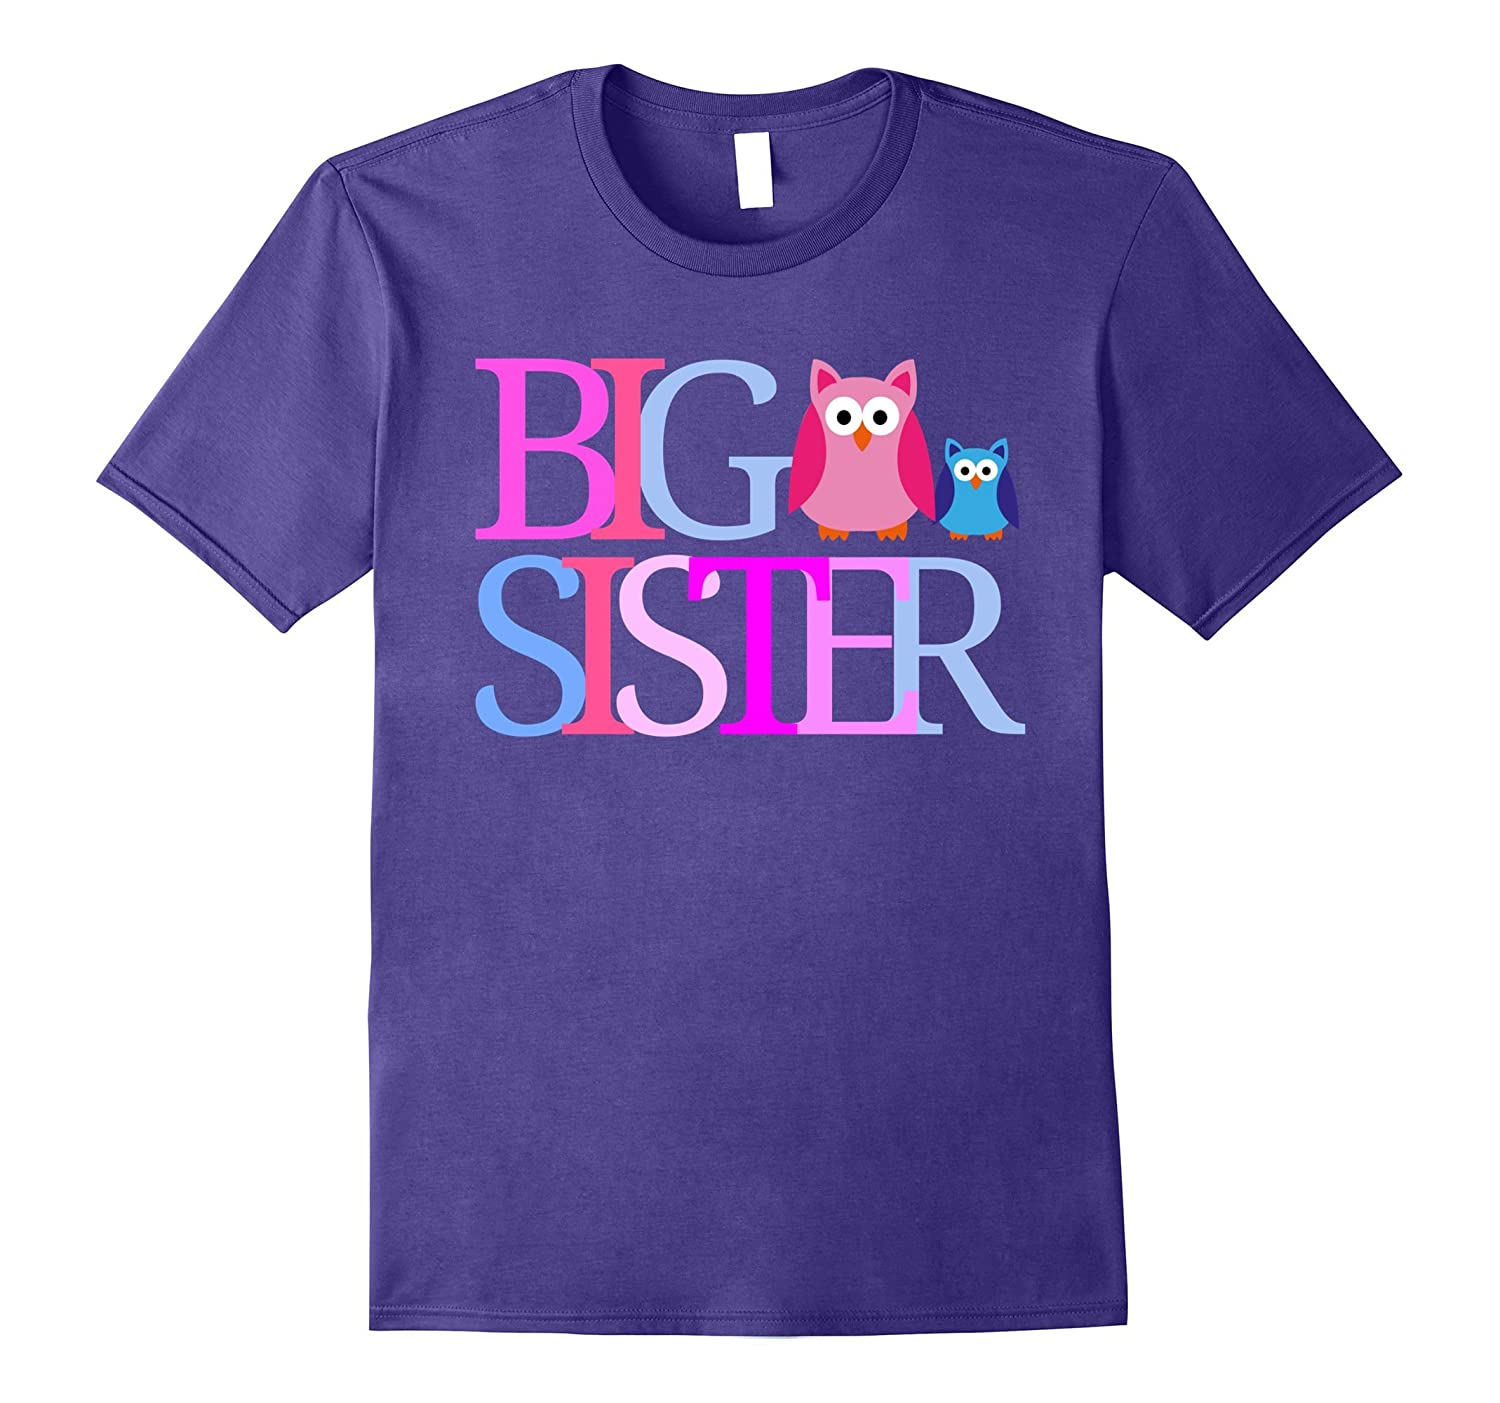 BIG SISTER T Shirt Cute Owls Tee Going To Be A Big Sister-FL